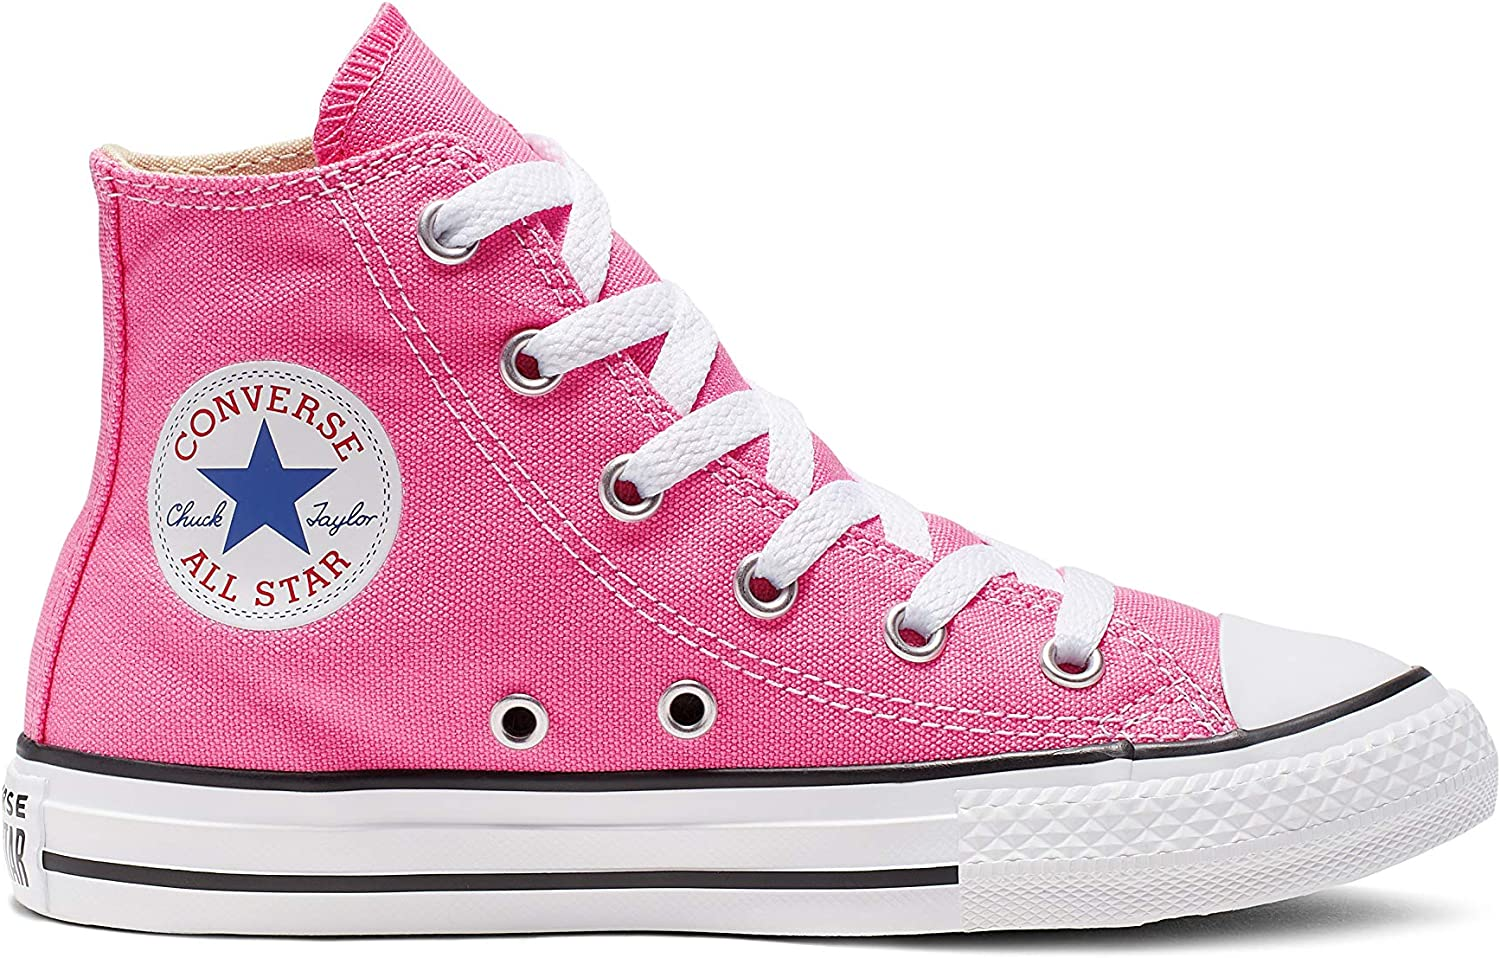 B0000937KY Converse Kids' Chuck Taylor All Star Canvas High Top Sneaker, Pink, 16 M US 81t7qPx8yrL